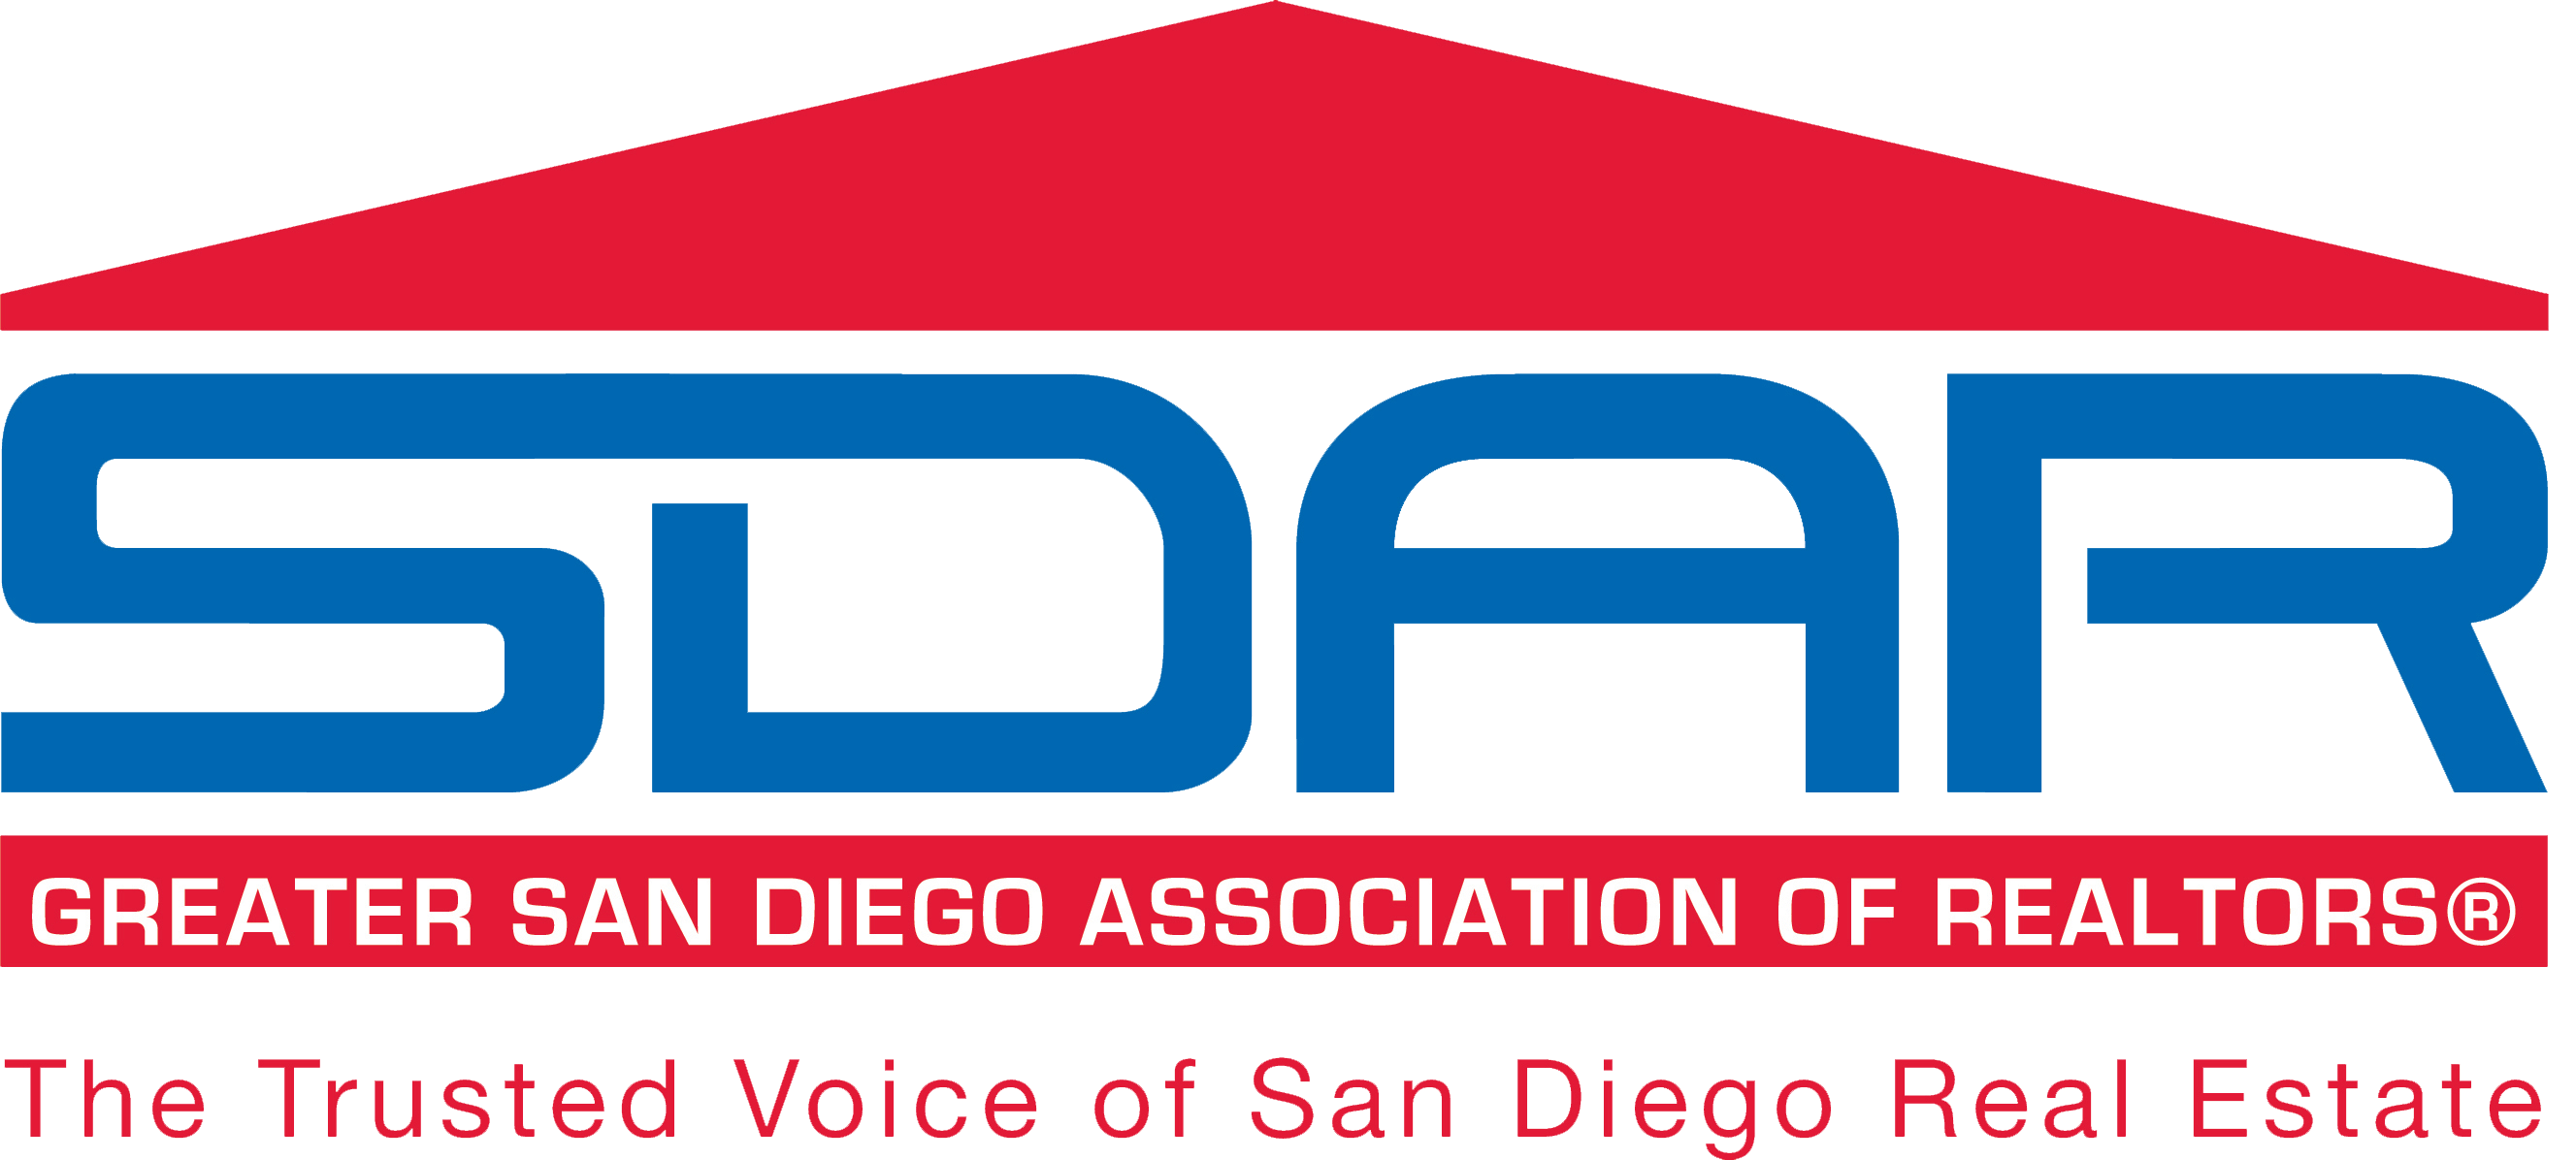 Strategic Agent Inc. Set to Unveil New Products at the 2017 SDAR Realtor Expo in the San Diego Convention Center in California on Friday April 27th